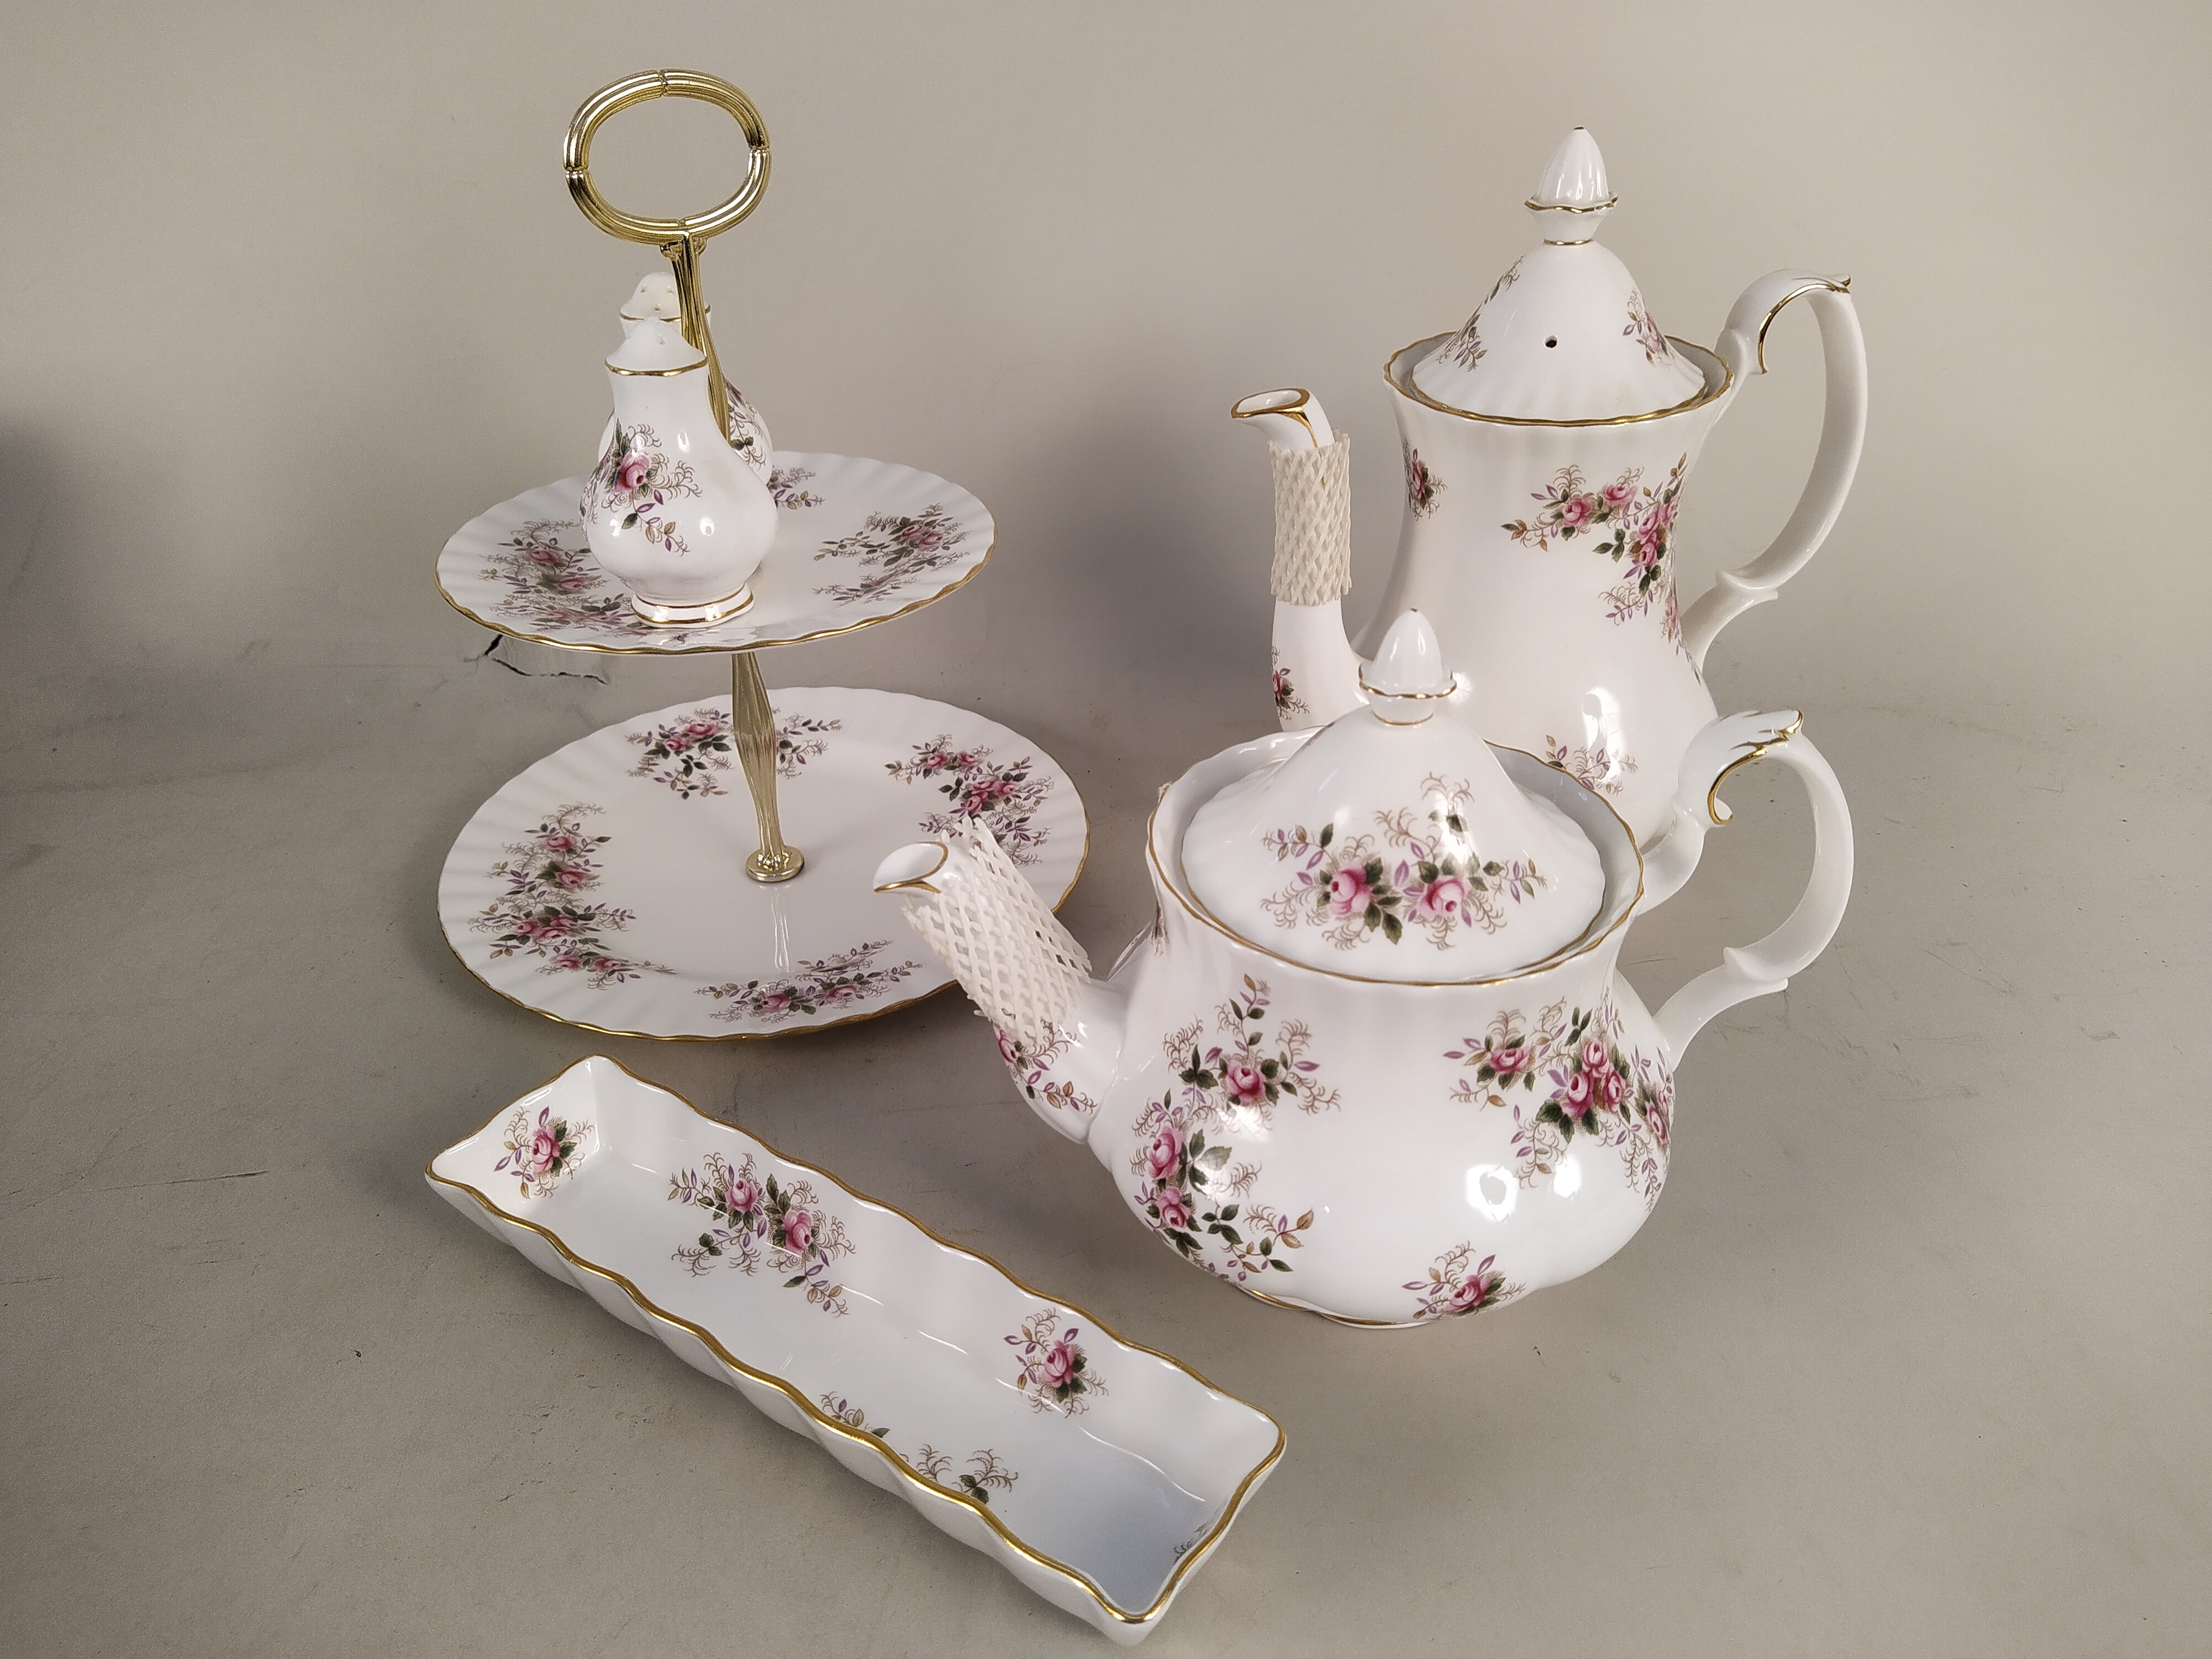 A large collection of Royal Albert 'Lavender Rose' tea and dinner wares - Image 2 of 3